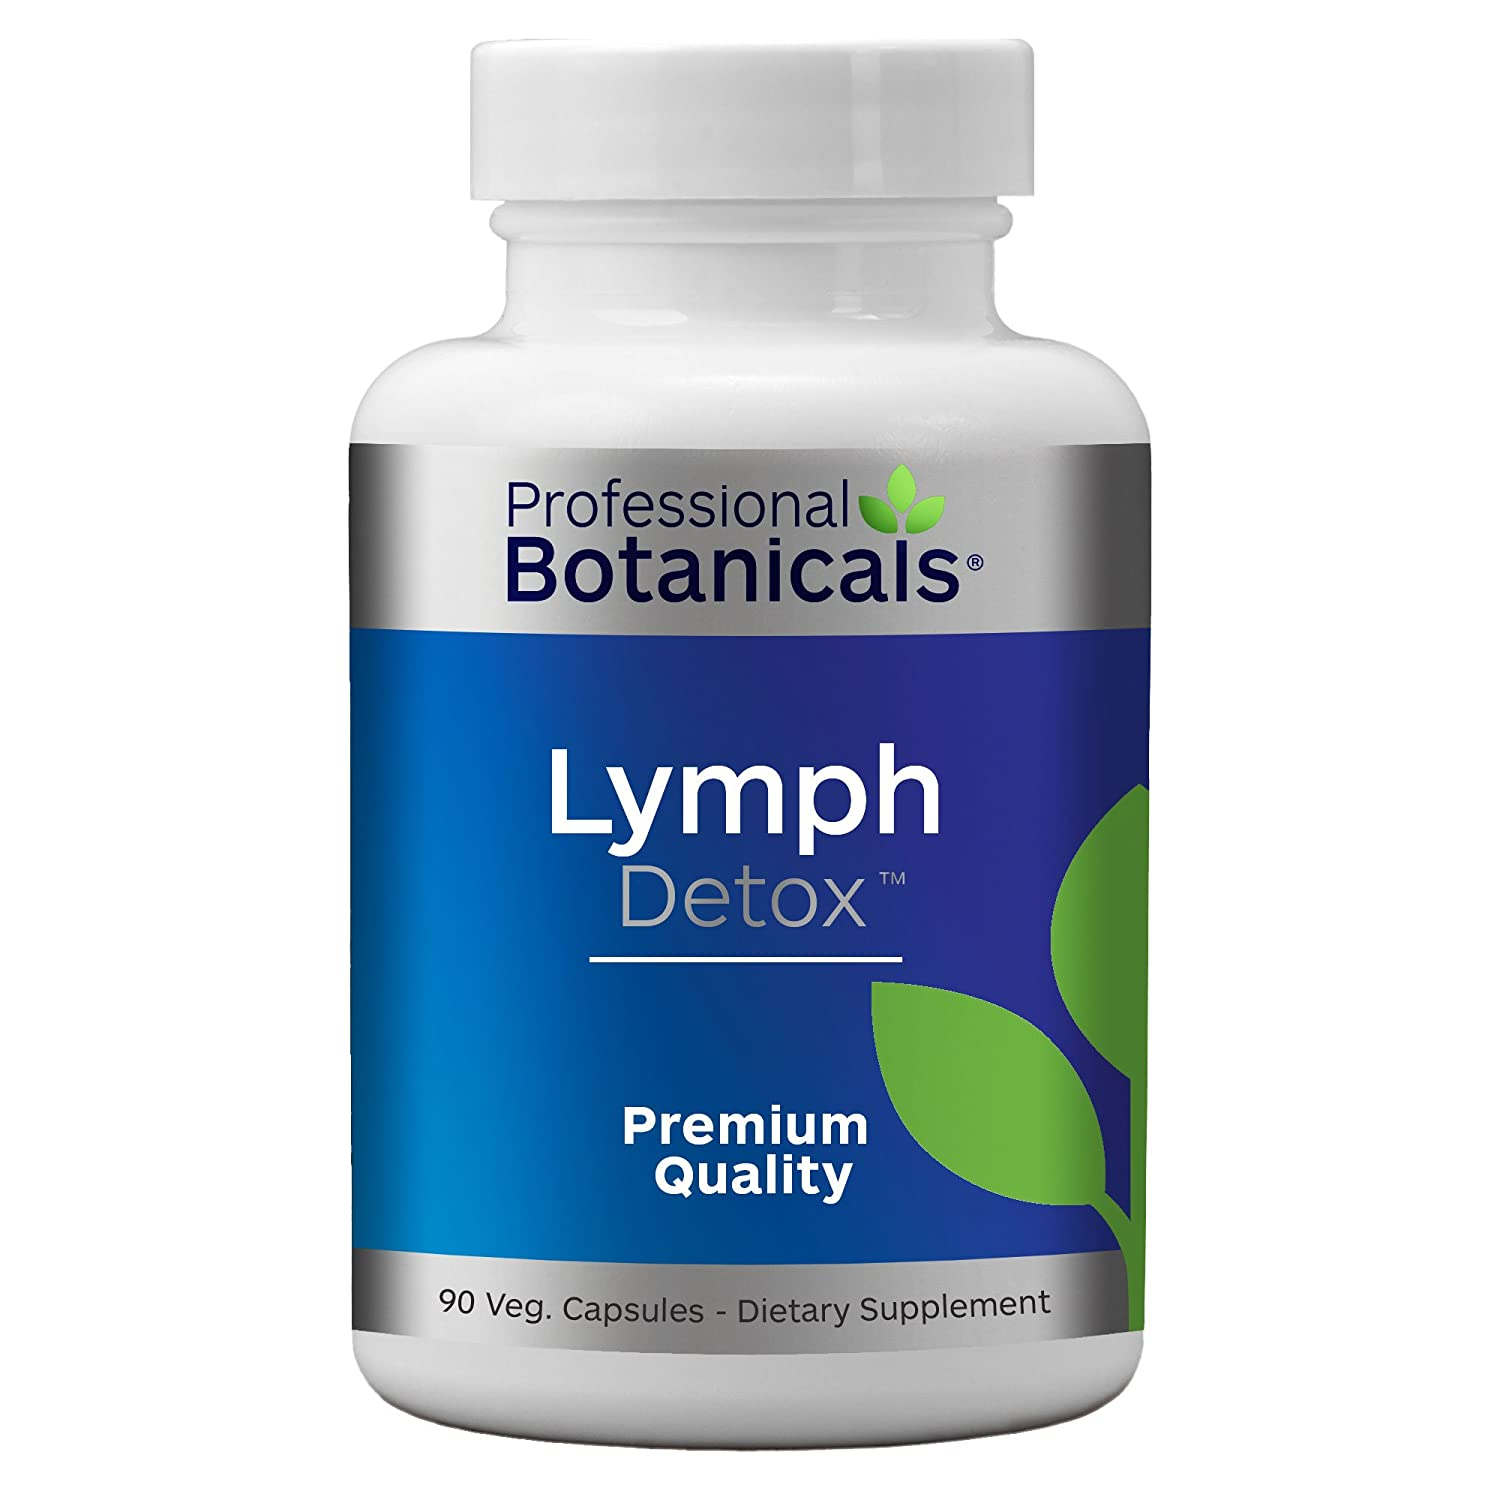 Professional Botanicals Lymph Detox – Natural Vegan Lymphatic Drainage Supplement Supports Natural Detoxification and Immune Function – 90 Vegetarian Capsules